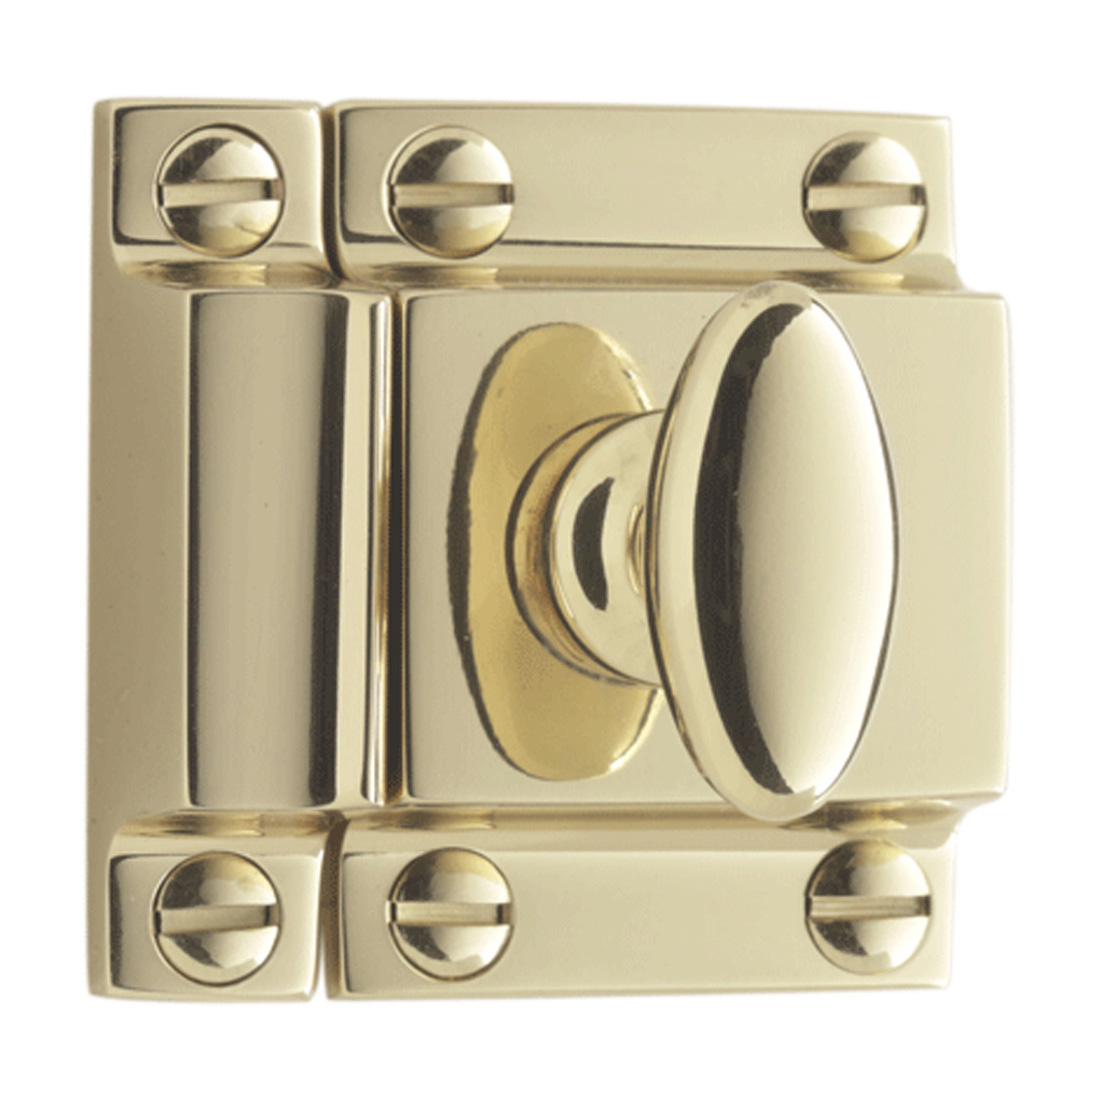 Small Oval Cupboard Latch